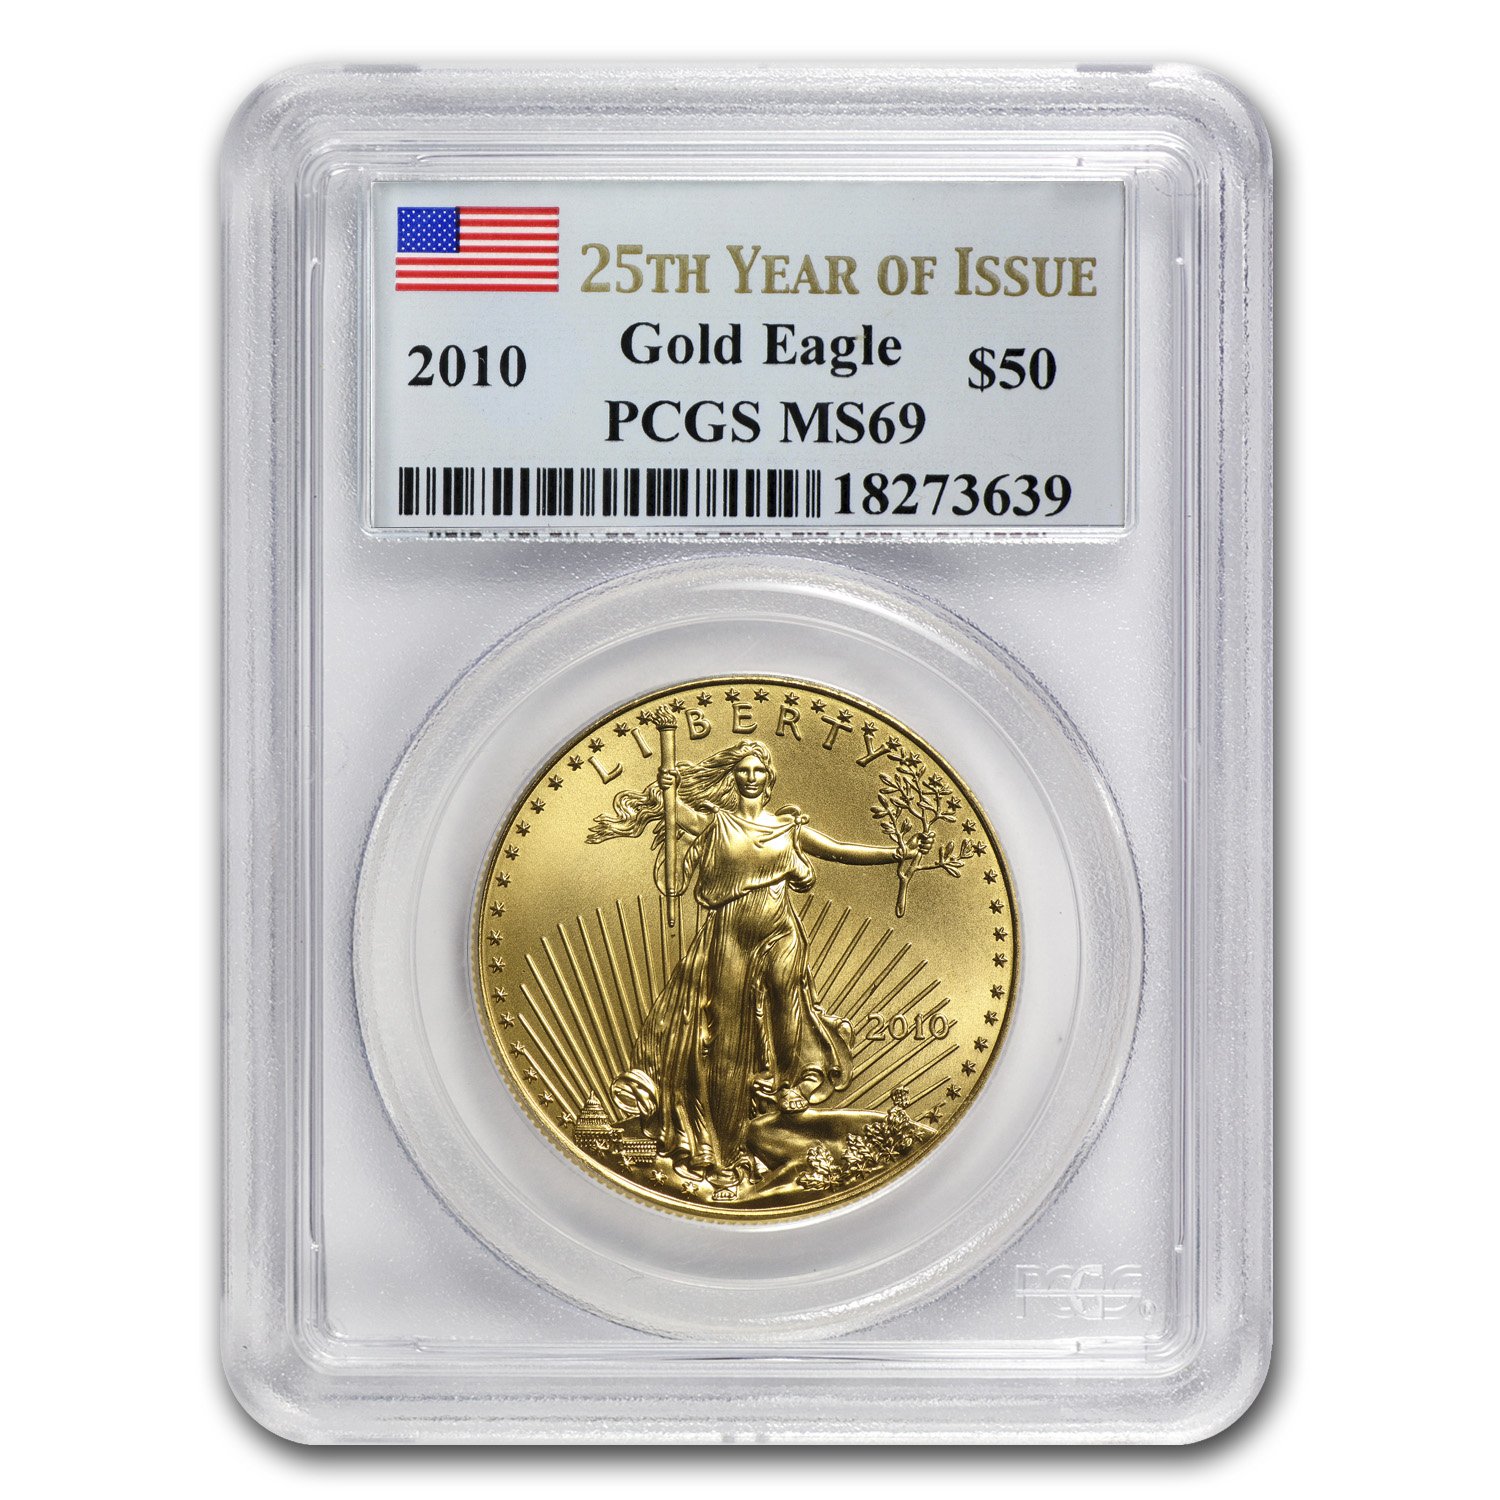 2010 1 oz Gold American Eagle MS-69 PCGS (25th Year of Issue)